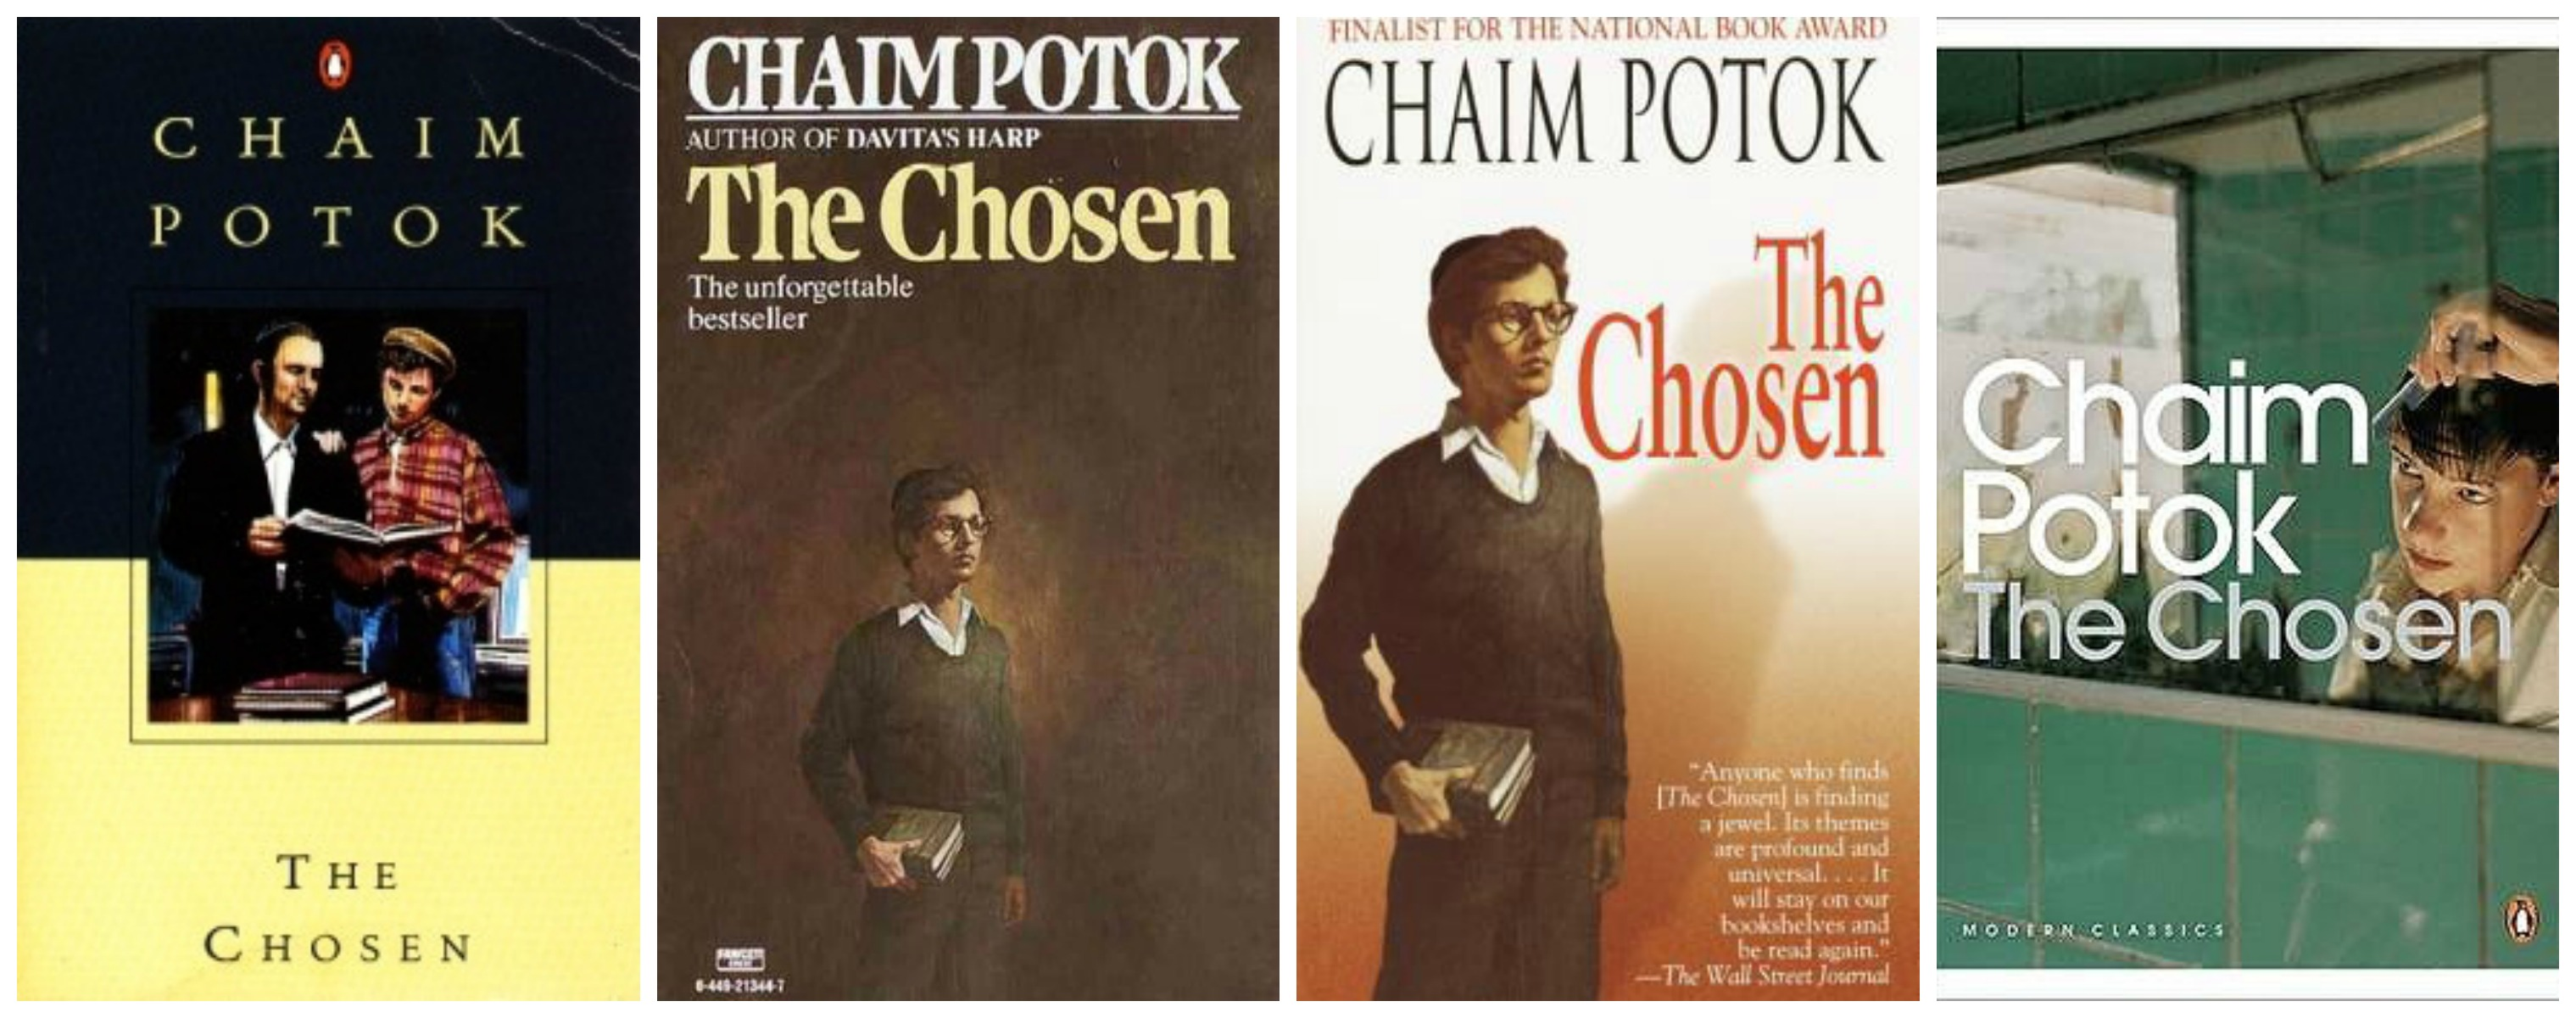 The Chosen covers